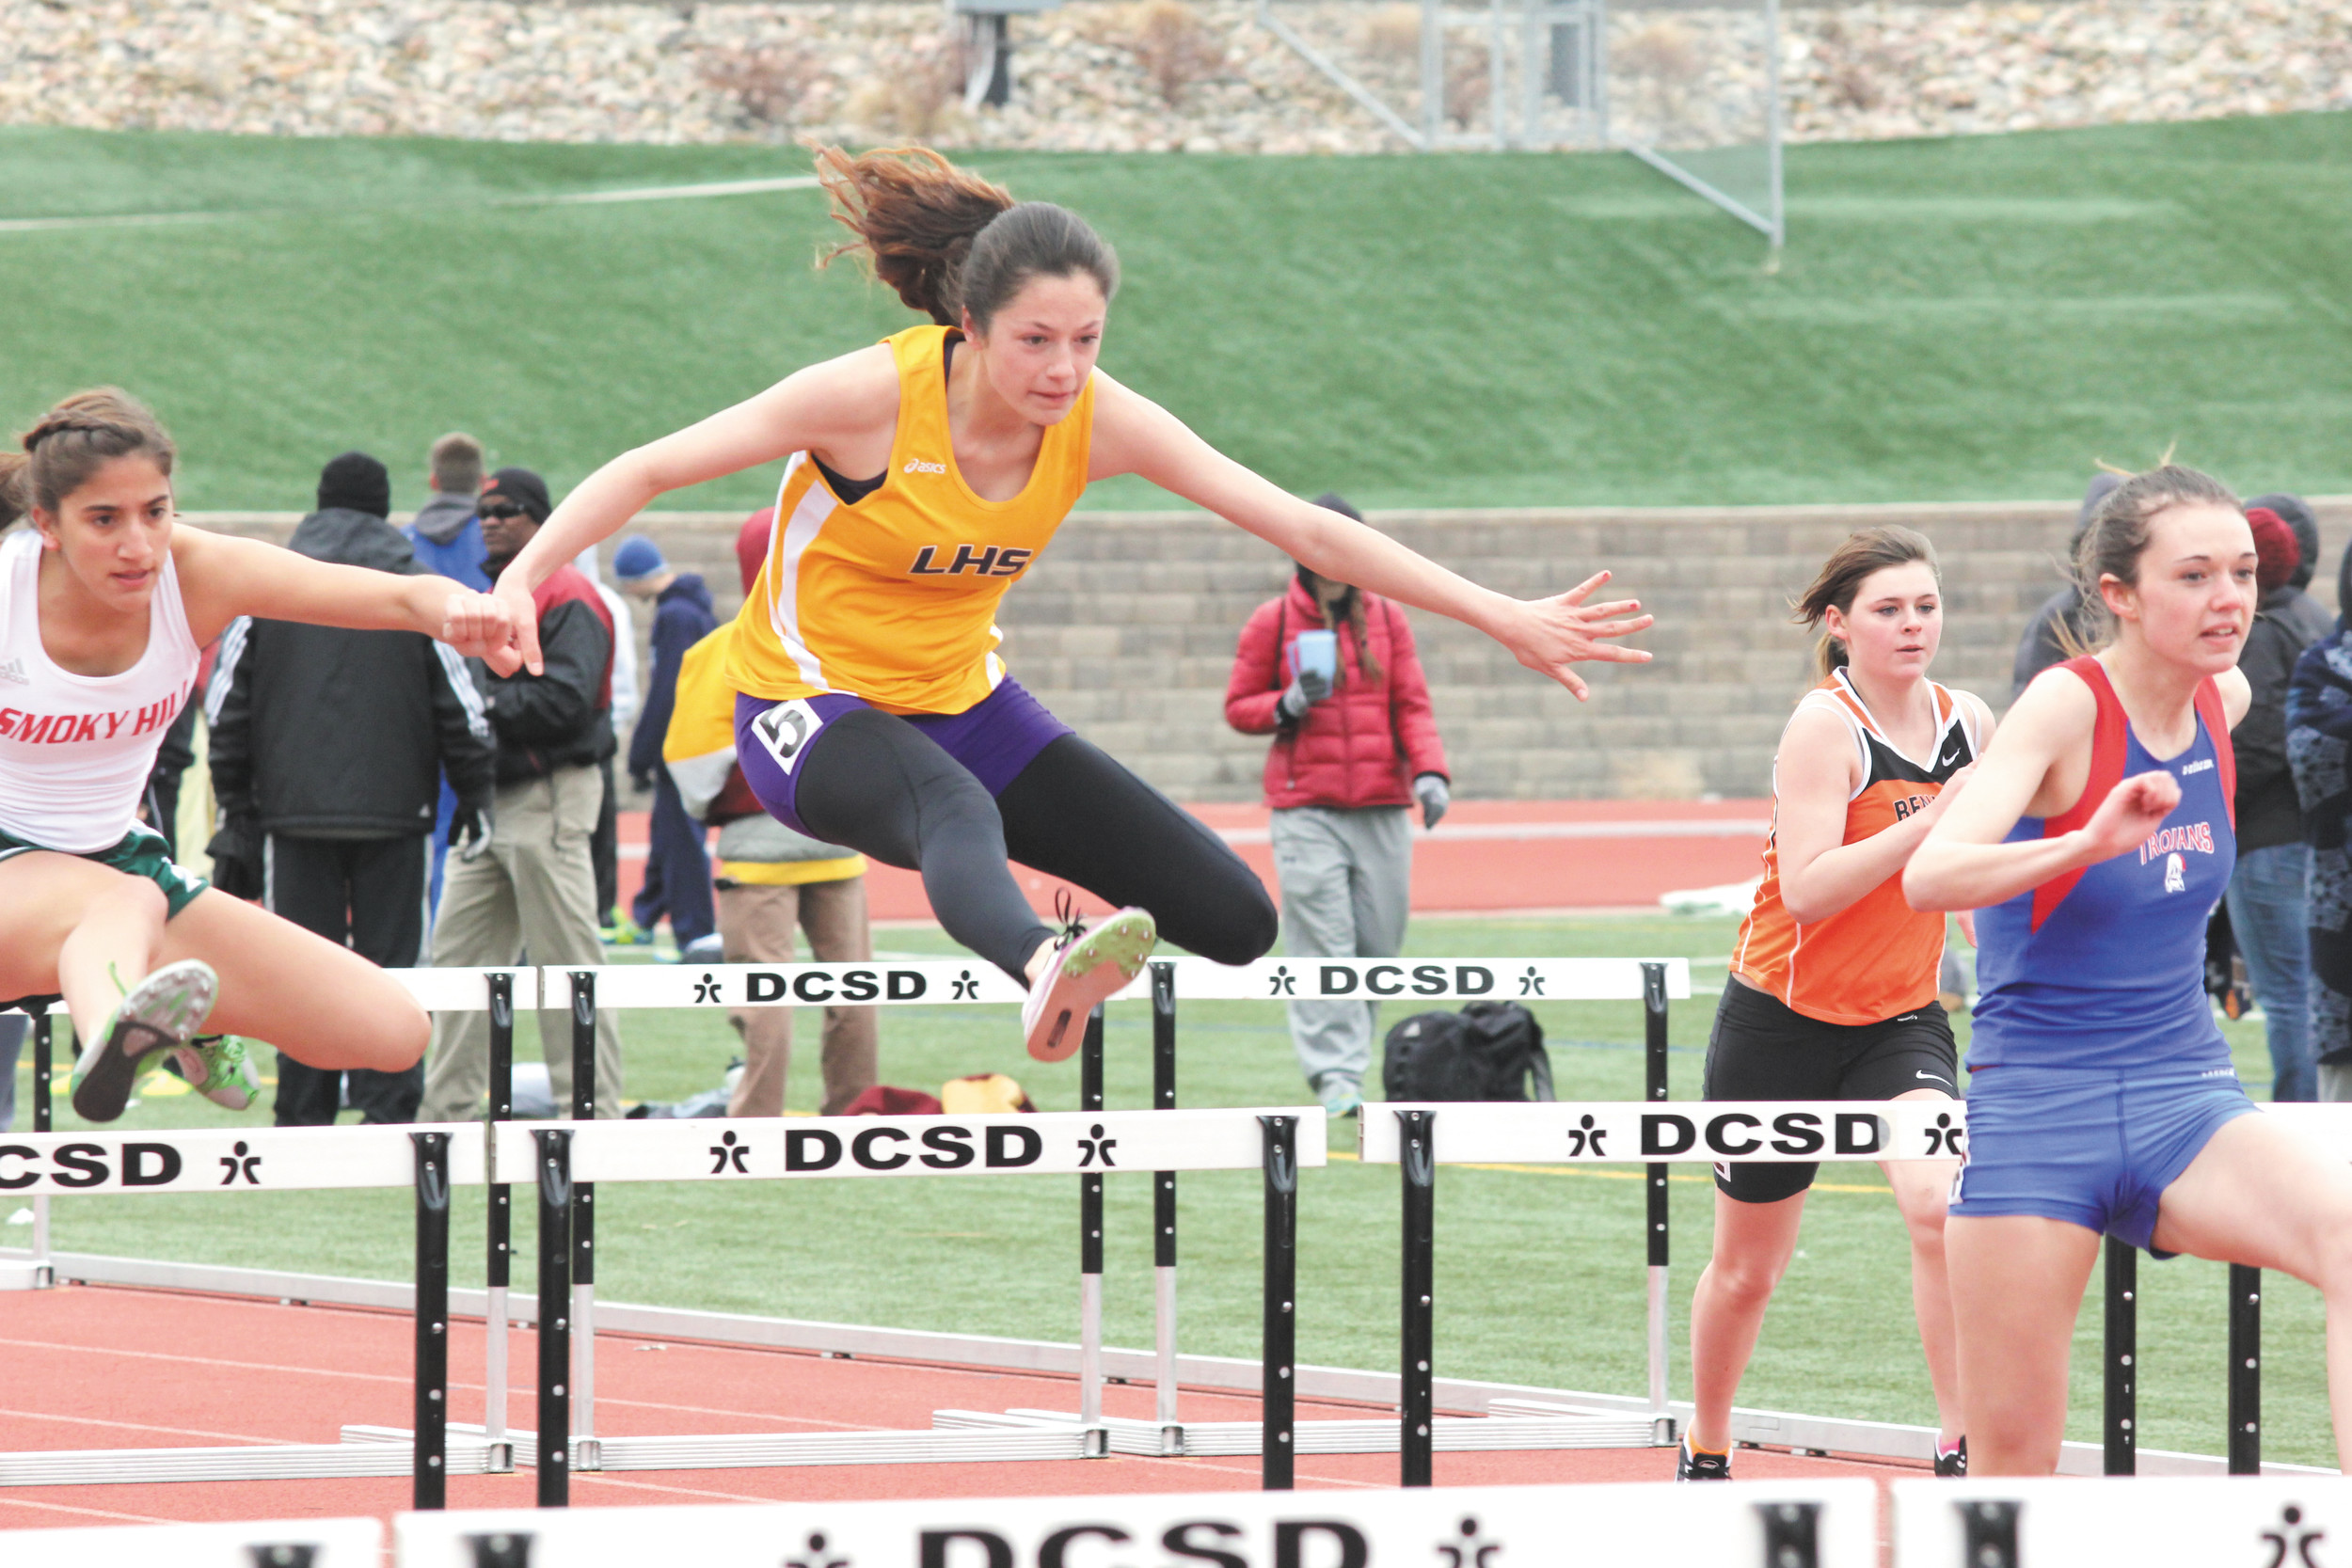 Littleton's Victoria Dinkel clears the barrier in the 100-meter hurdles at the March 22 Sabercat Invitational. Dinkel finished third in her heat in the hurdles and later helped the Lions finish second in the 800-meter sprint relay.